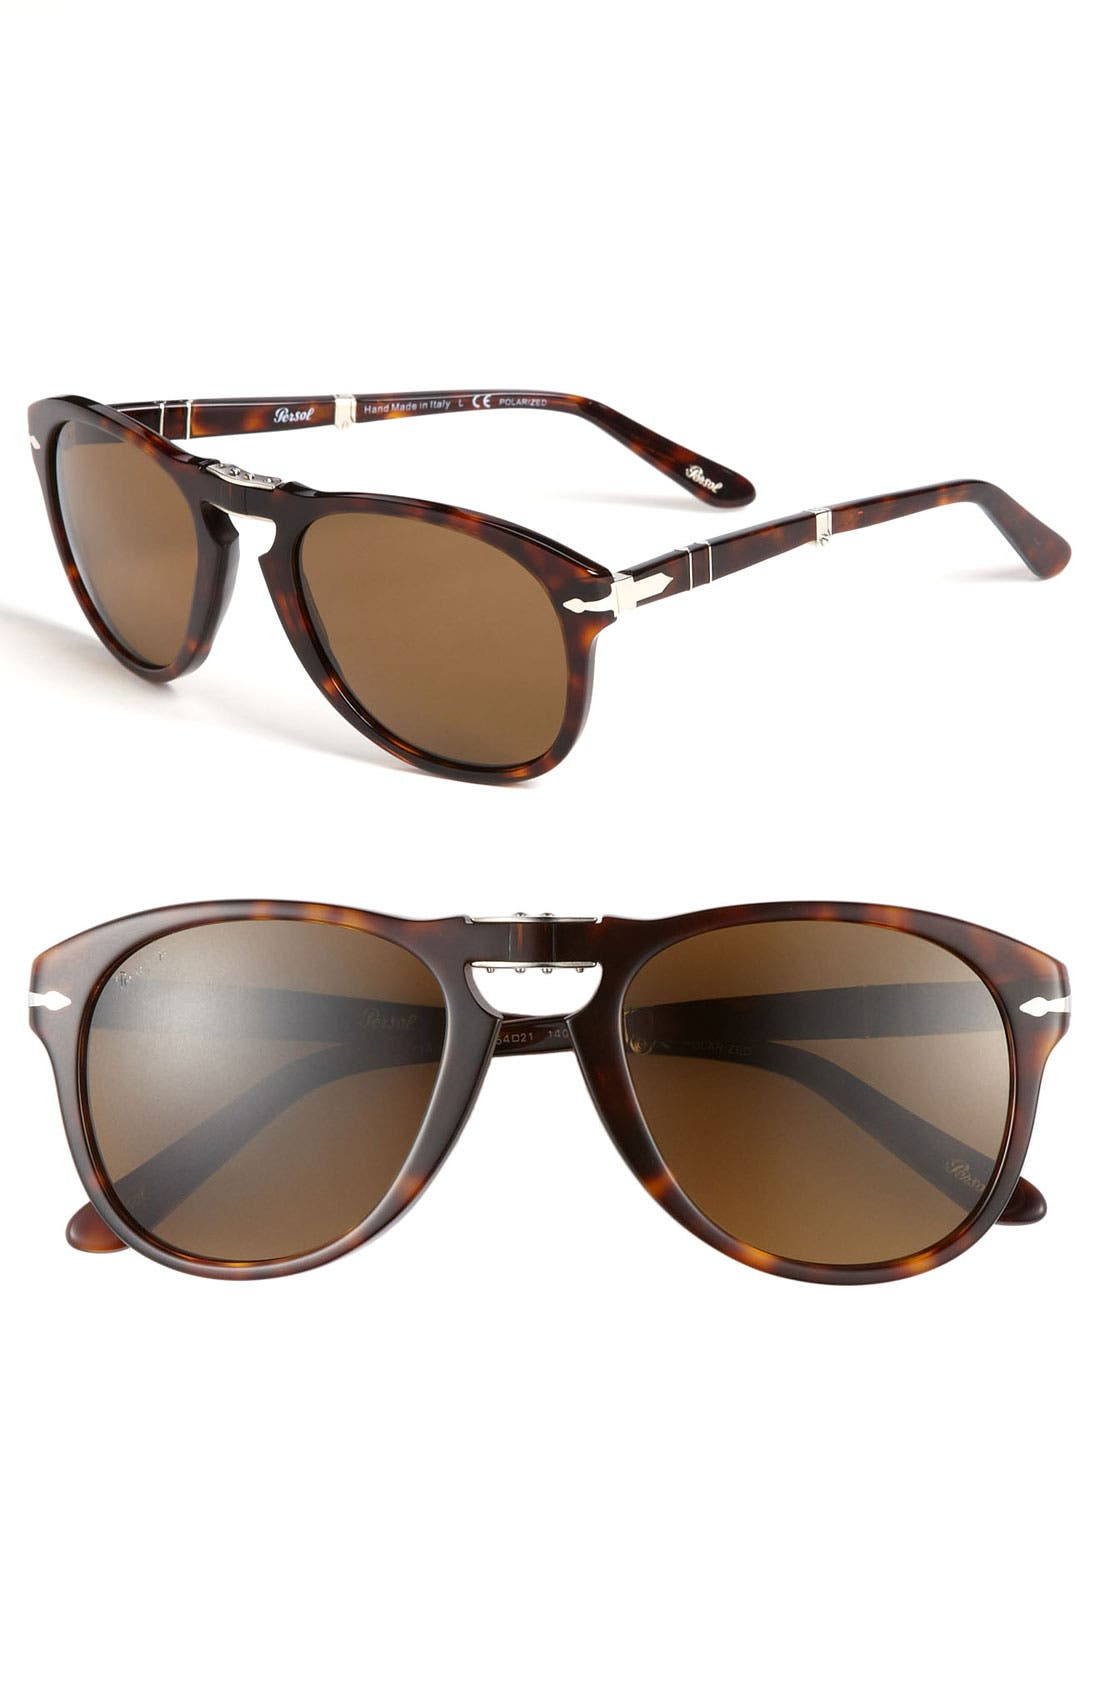 Main Image - Persol '714' 57mm Folding Polarized Keyhole Sunglasses